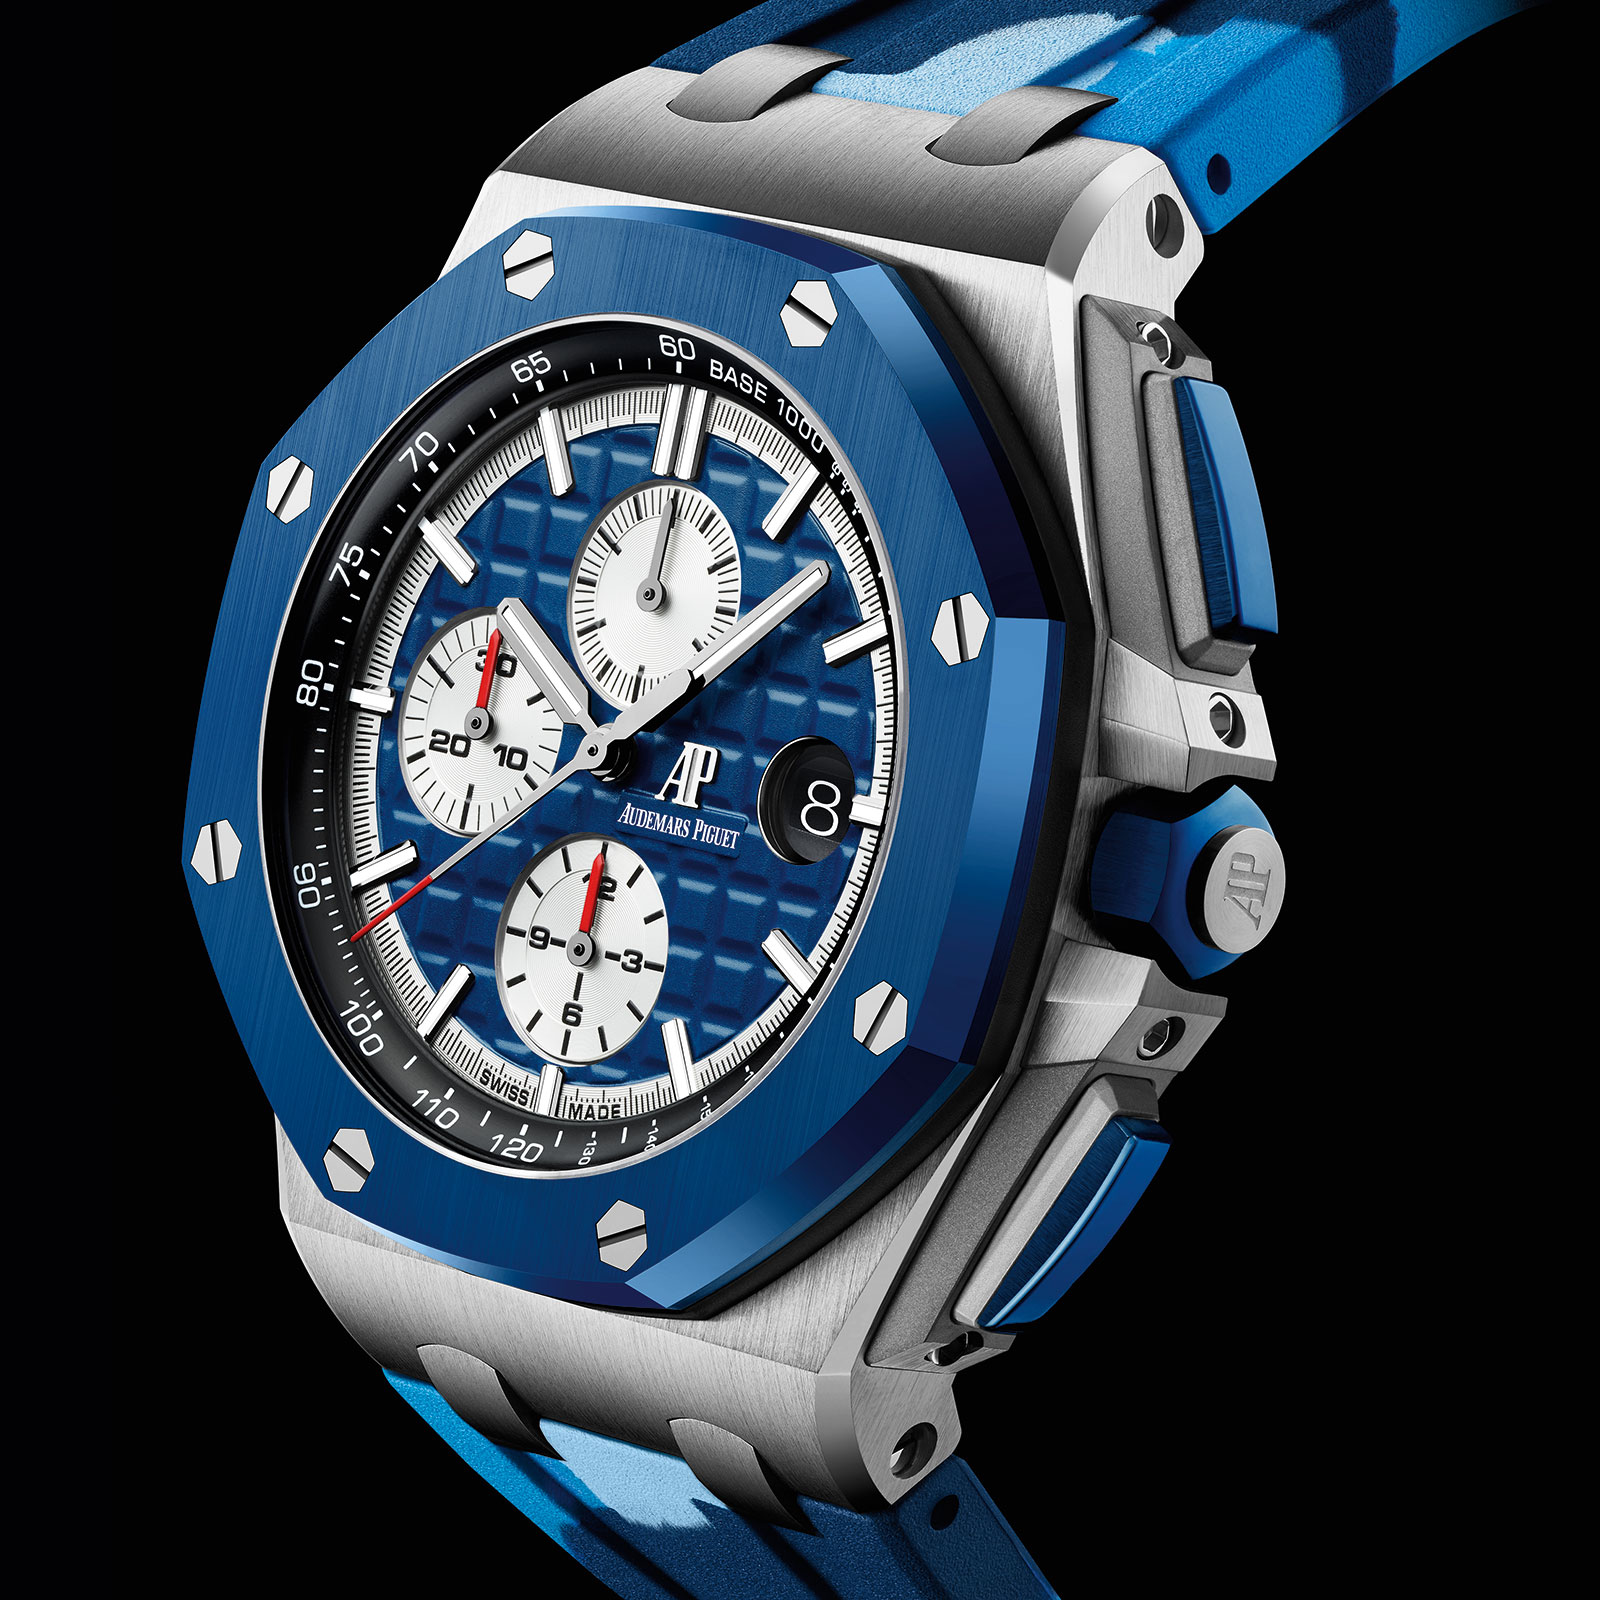 Audemars Piguet Royal Oak Offshore Camo blue